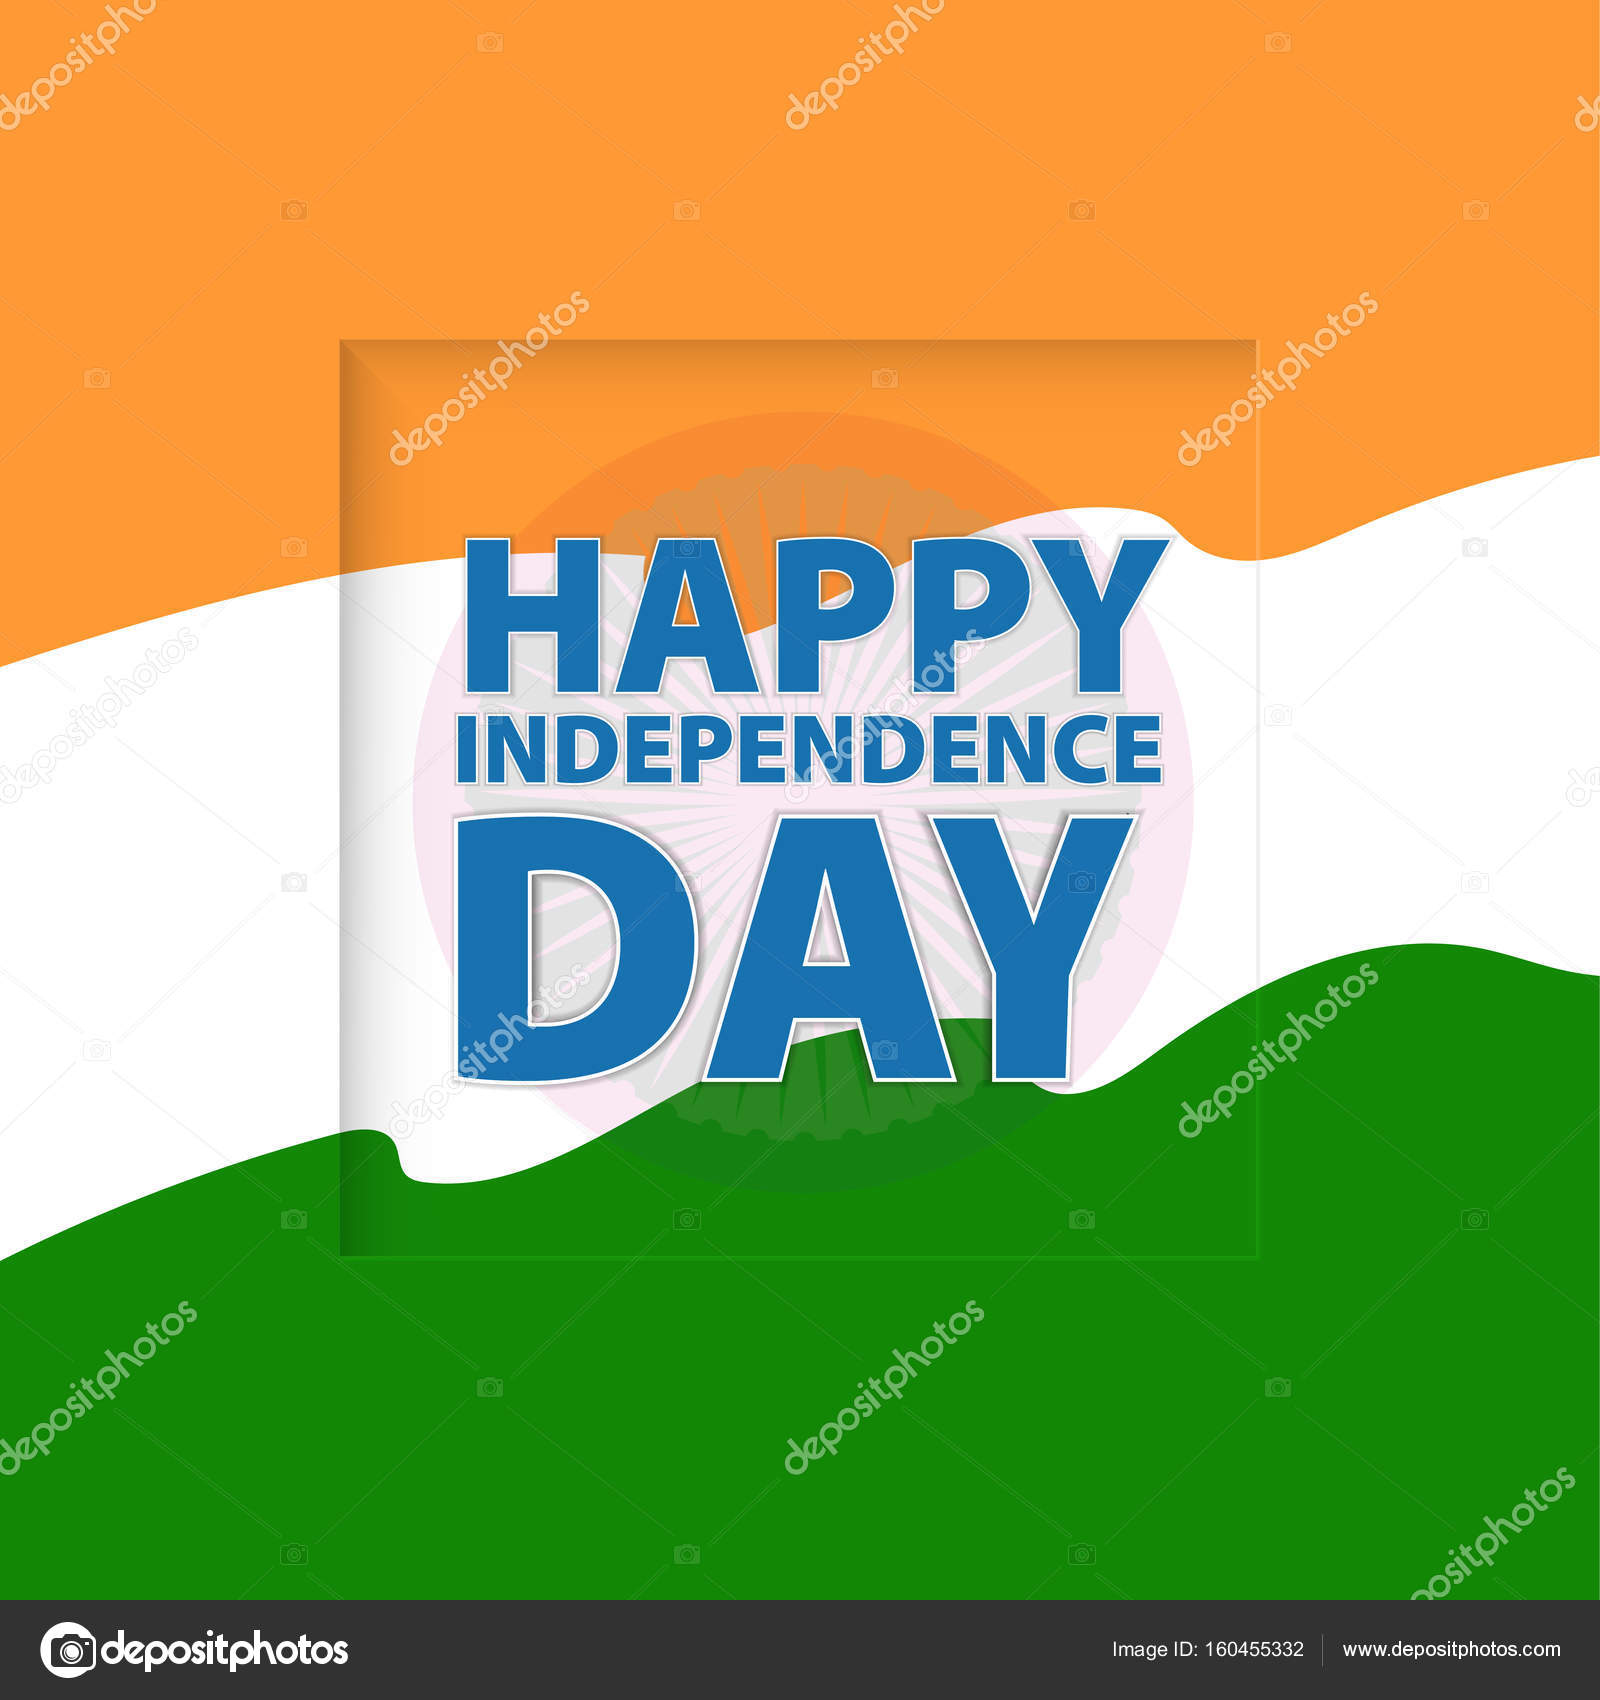 Happy Independence Day India Vector Illustration Greeting Card